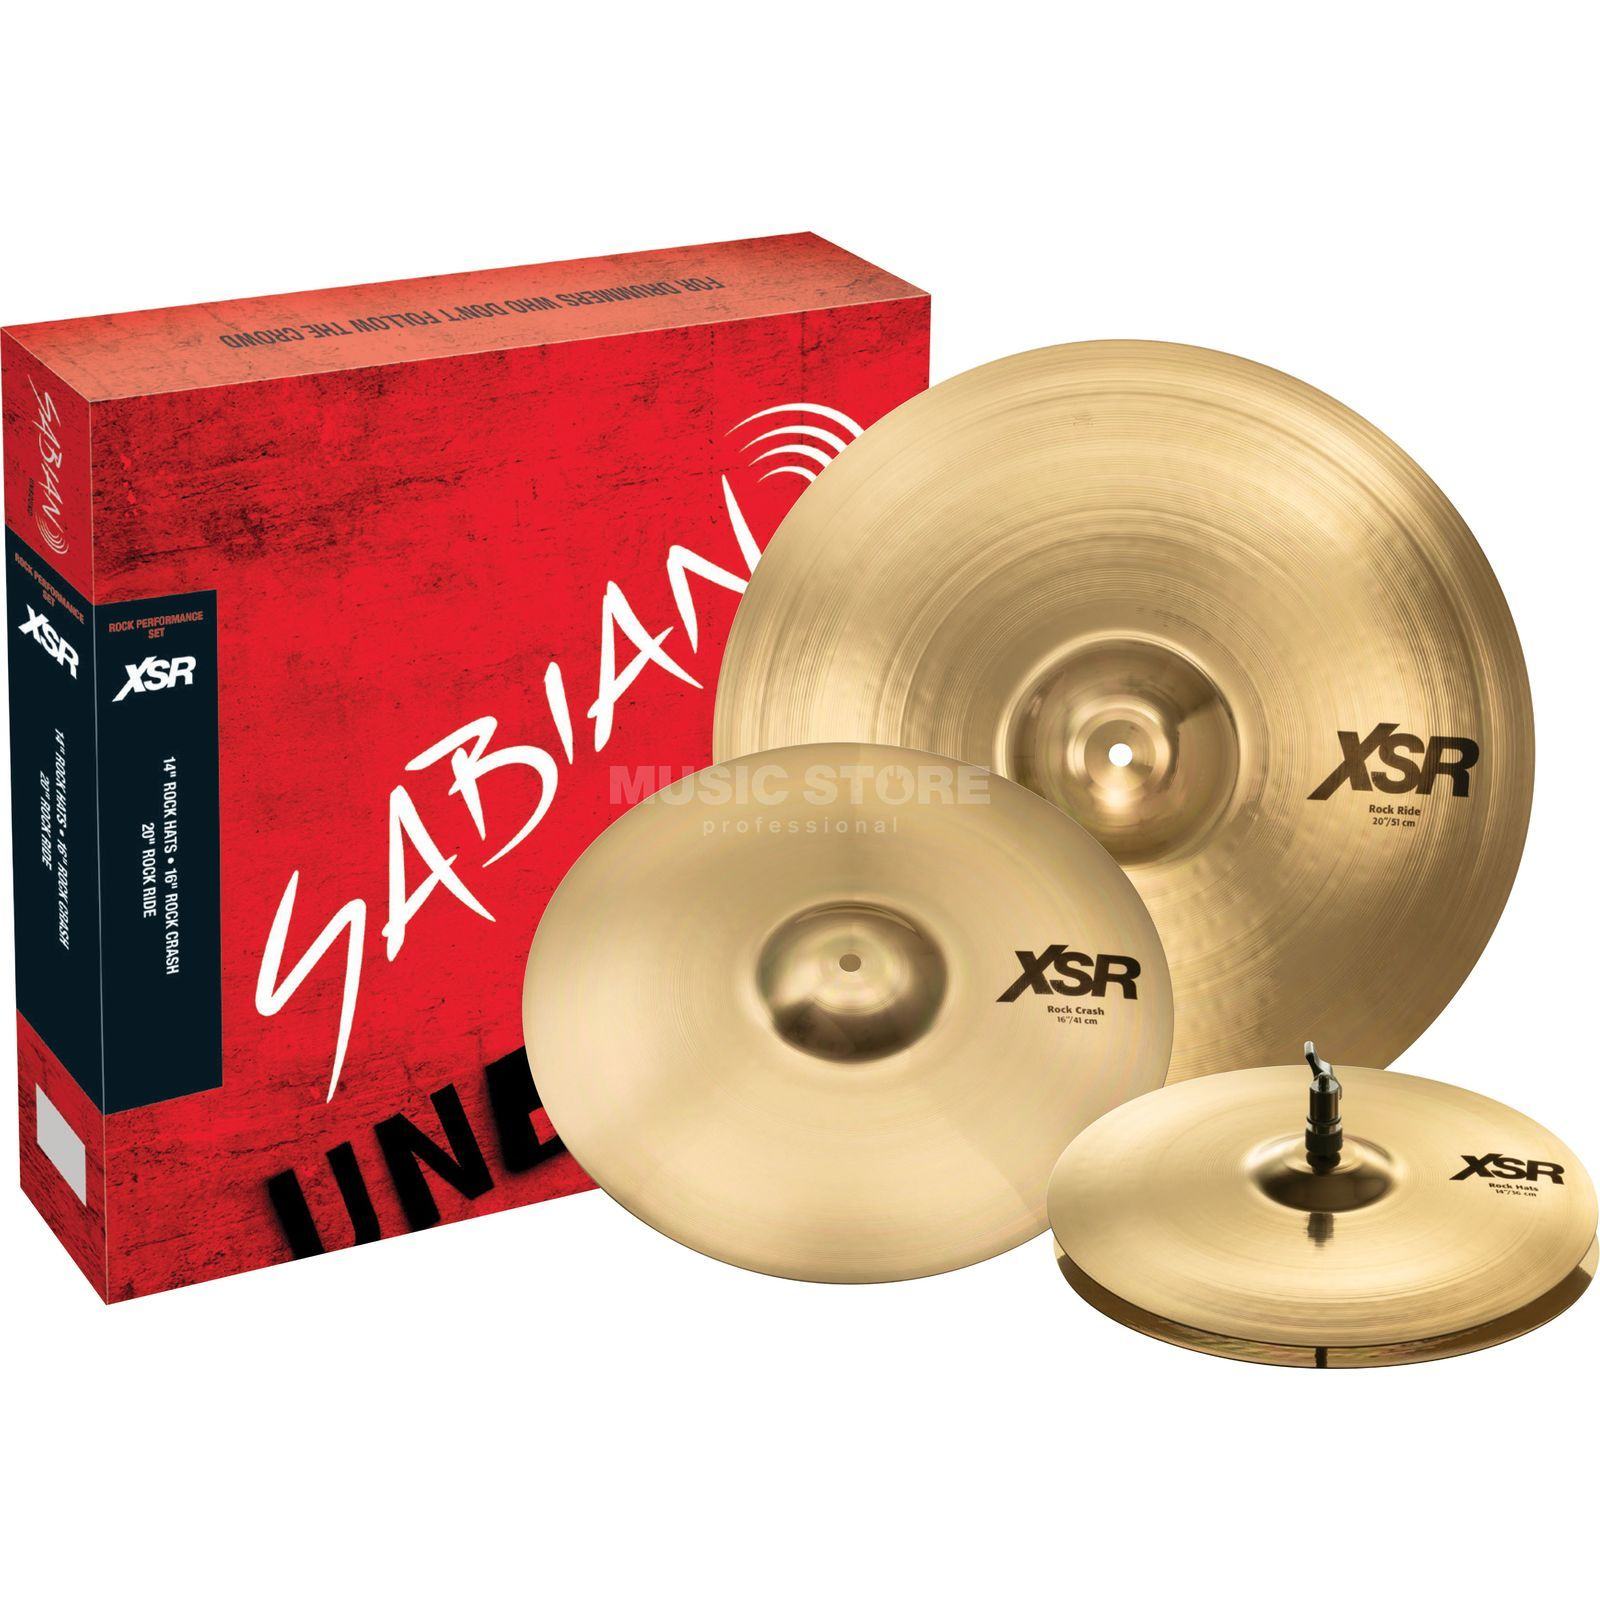 Sabian XSR Rock Performance Set Produktbild